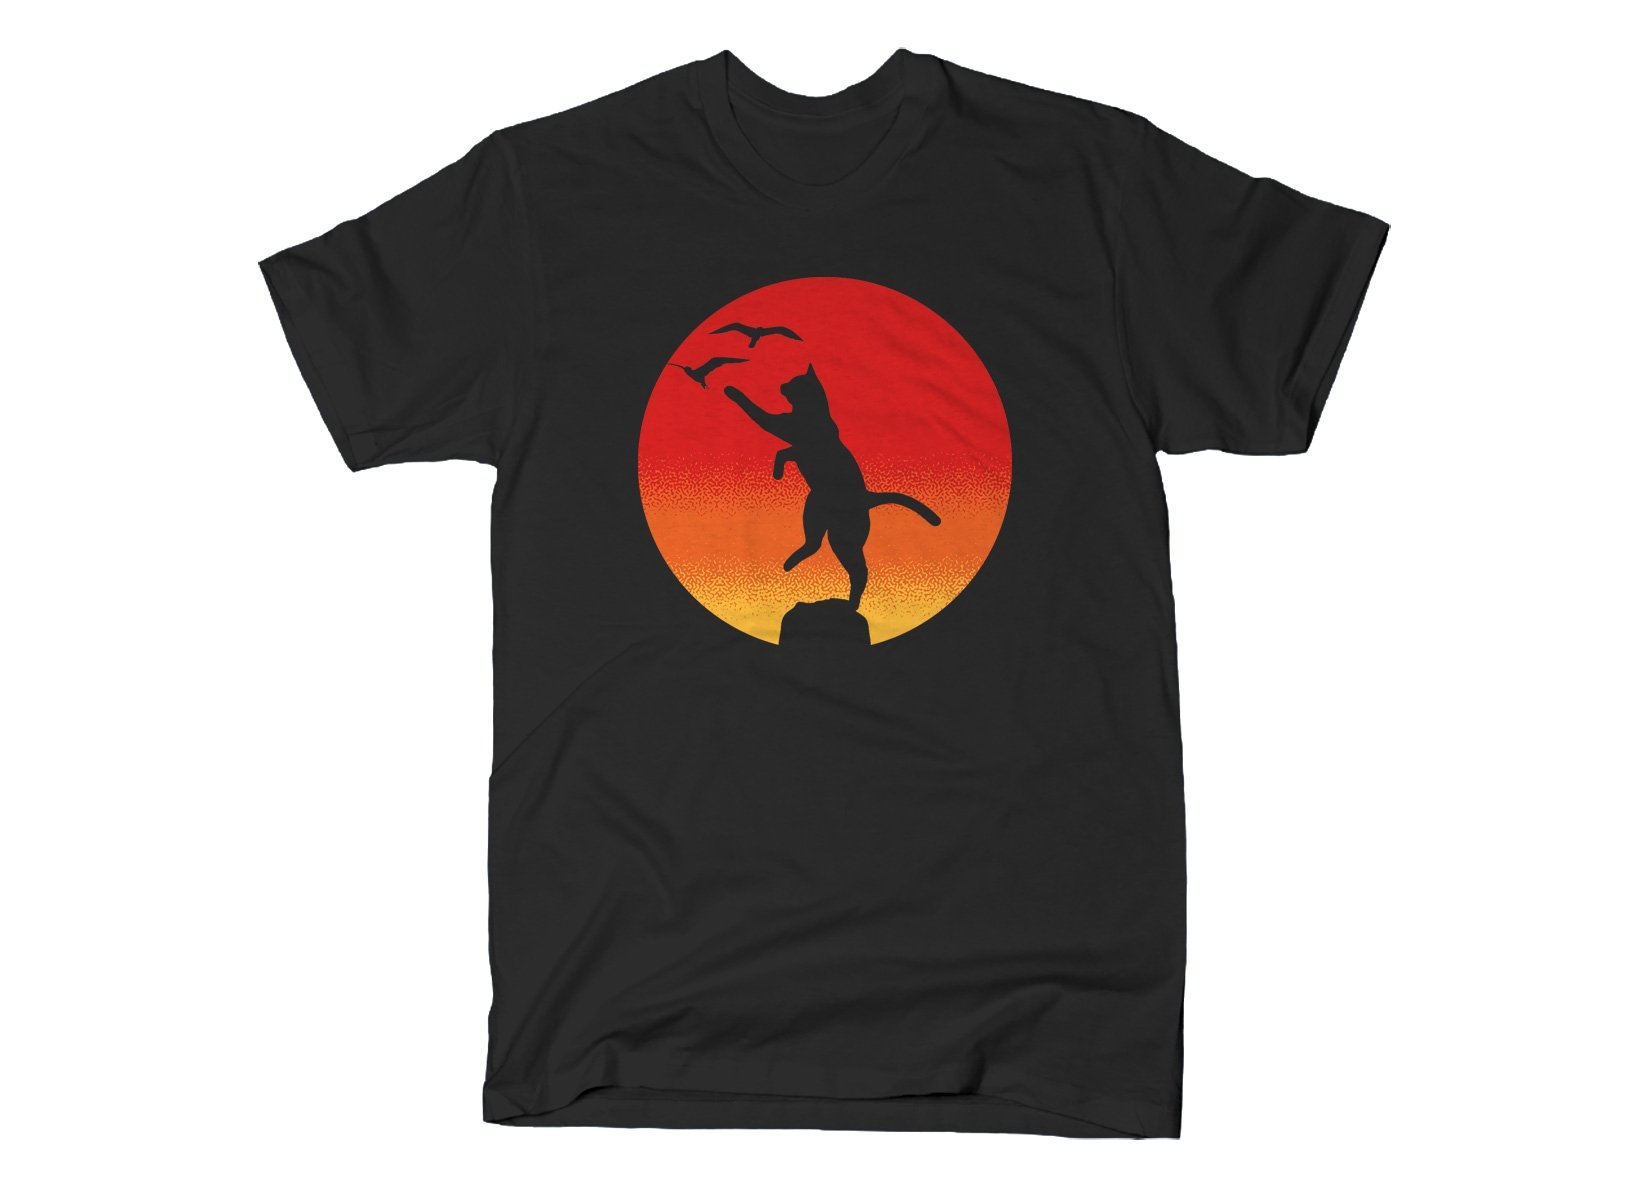 The Karate Cat on Mens T-Shirt